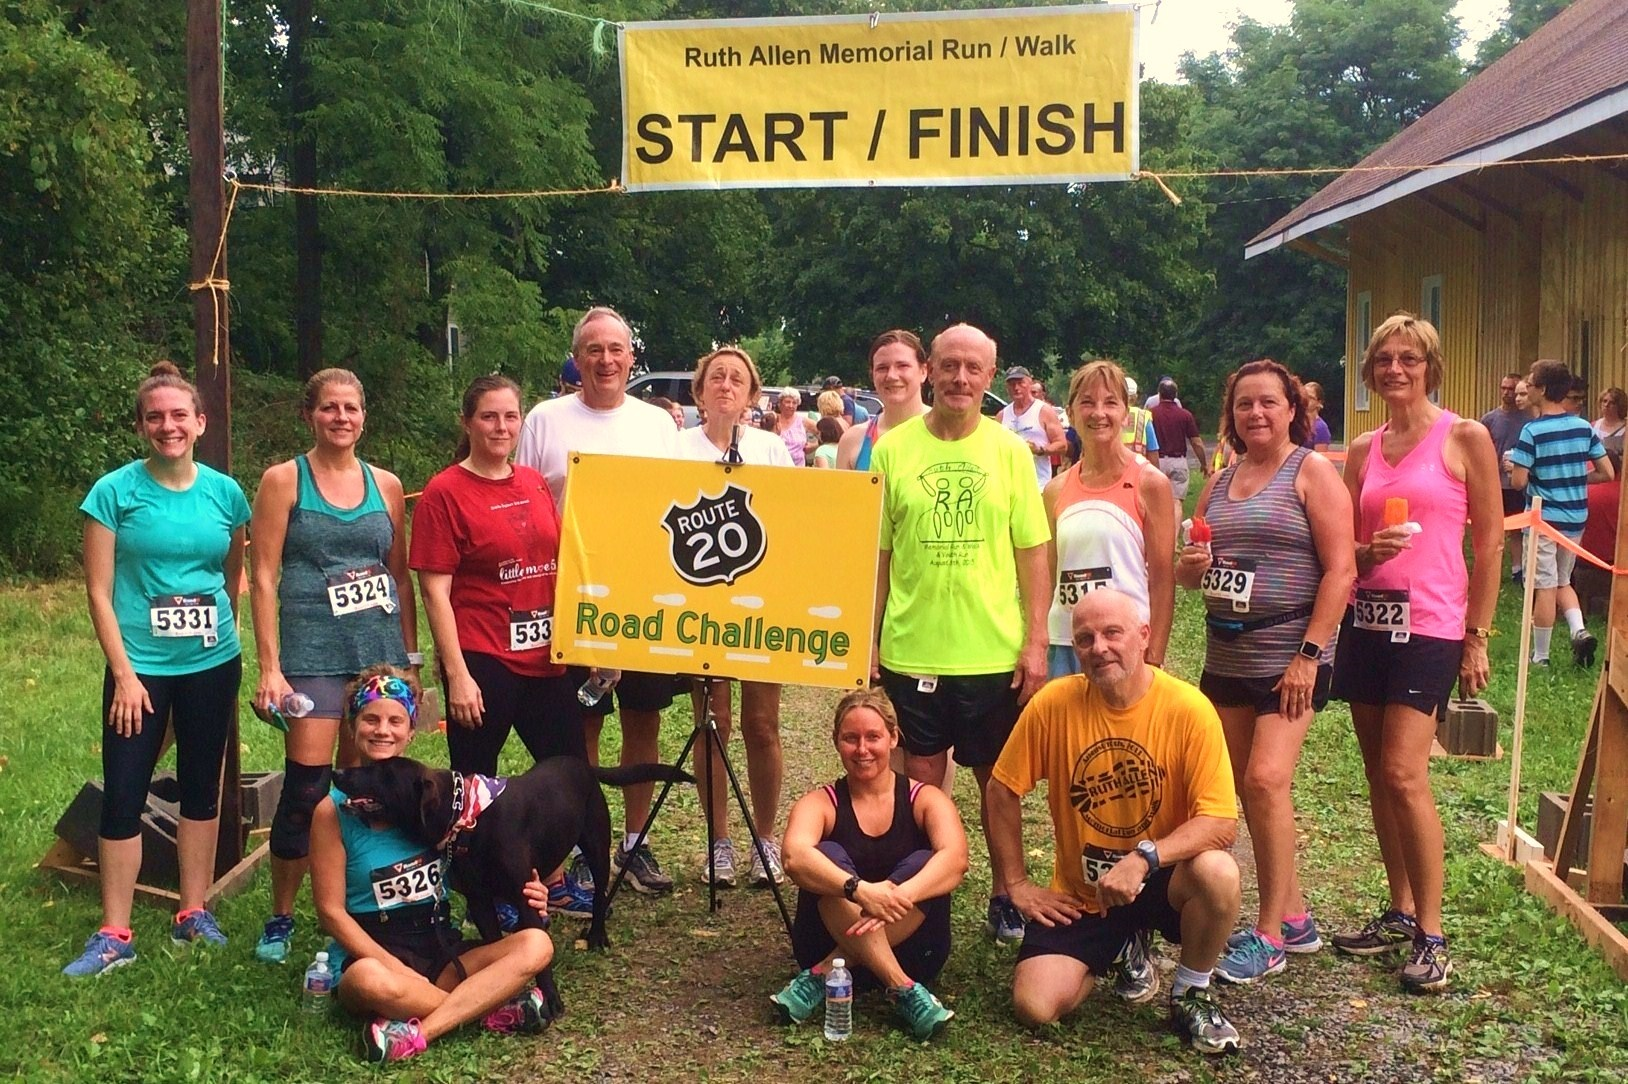 Race Results for the 7th Annual Ruth Allen Memorial Run